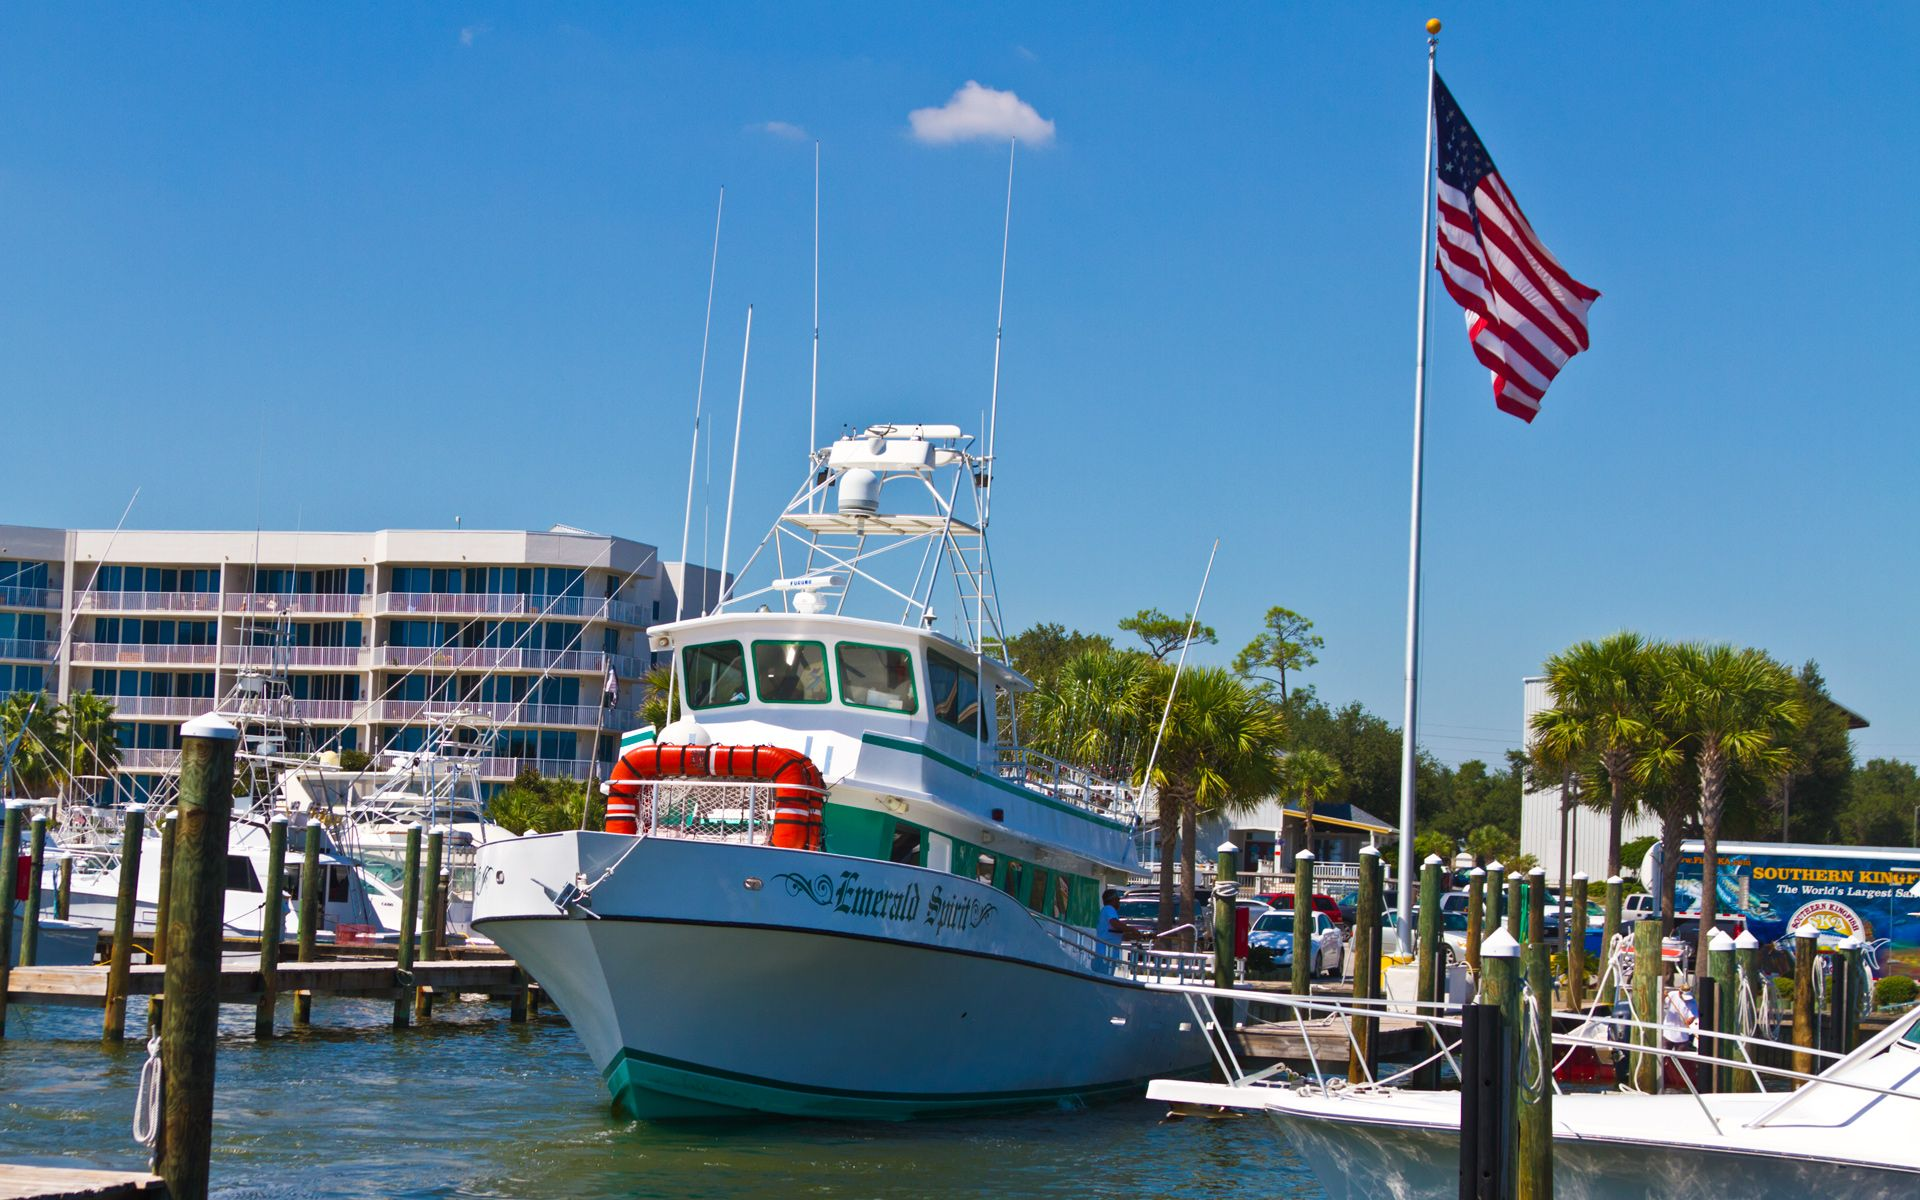 Action Charter Service S The Emerald Spirit In Orange Beach At Sportsman Marina